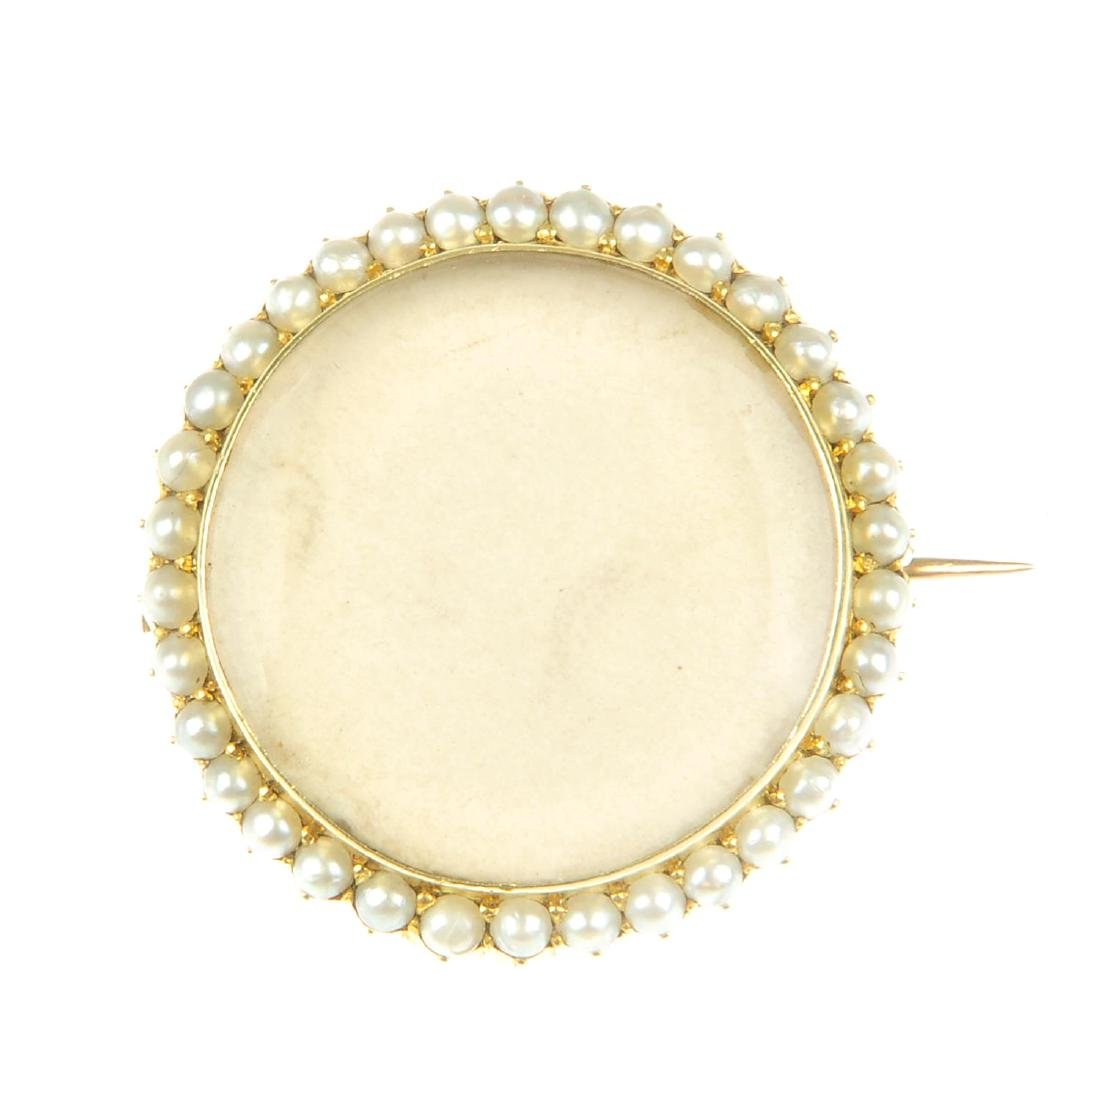 An early 20th century gold seed pearl brooch. Of